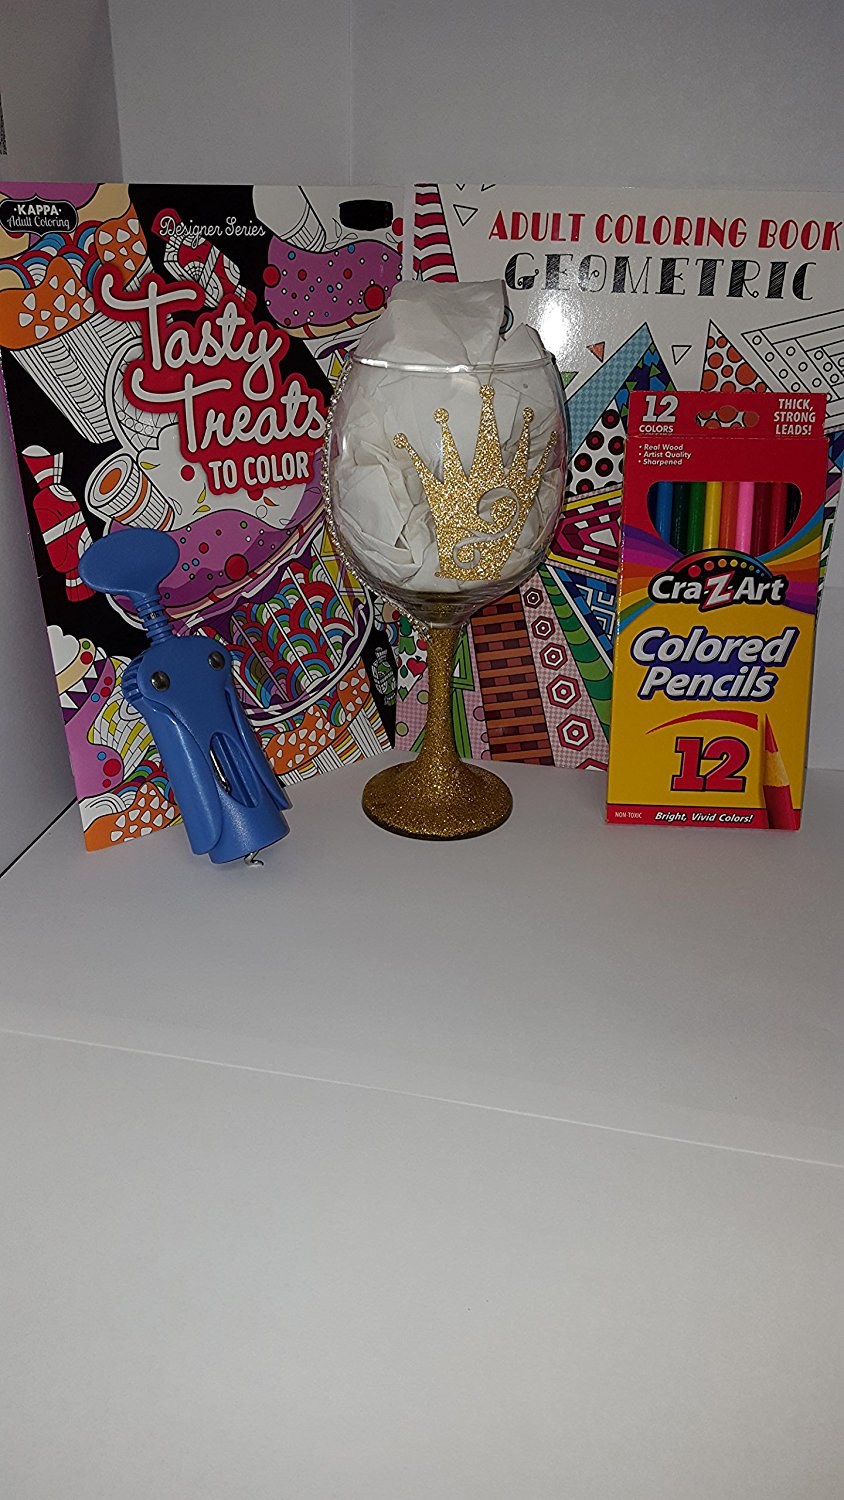 Relax, Calm Your Mind & Relieve Stress Bundle Gift Set: Gold Wine Glass (Queen Of Everything), Wing Corkscrew Wine Opener, 2 Adult Coloring Books & 12 Per-Sharpened Color Pencils